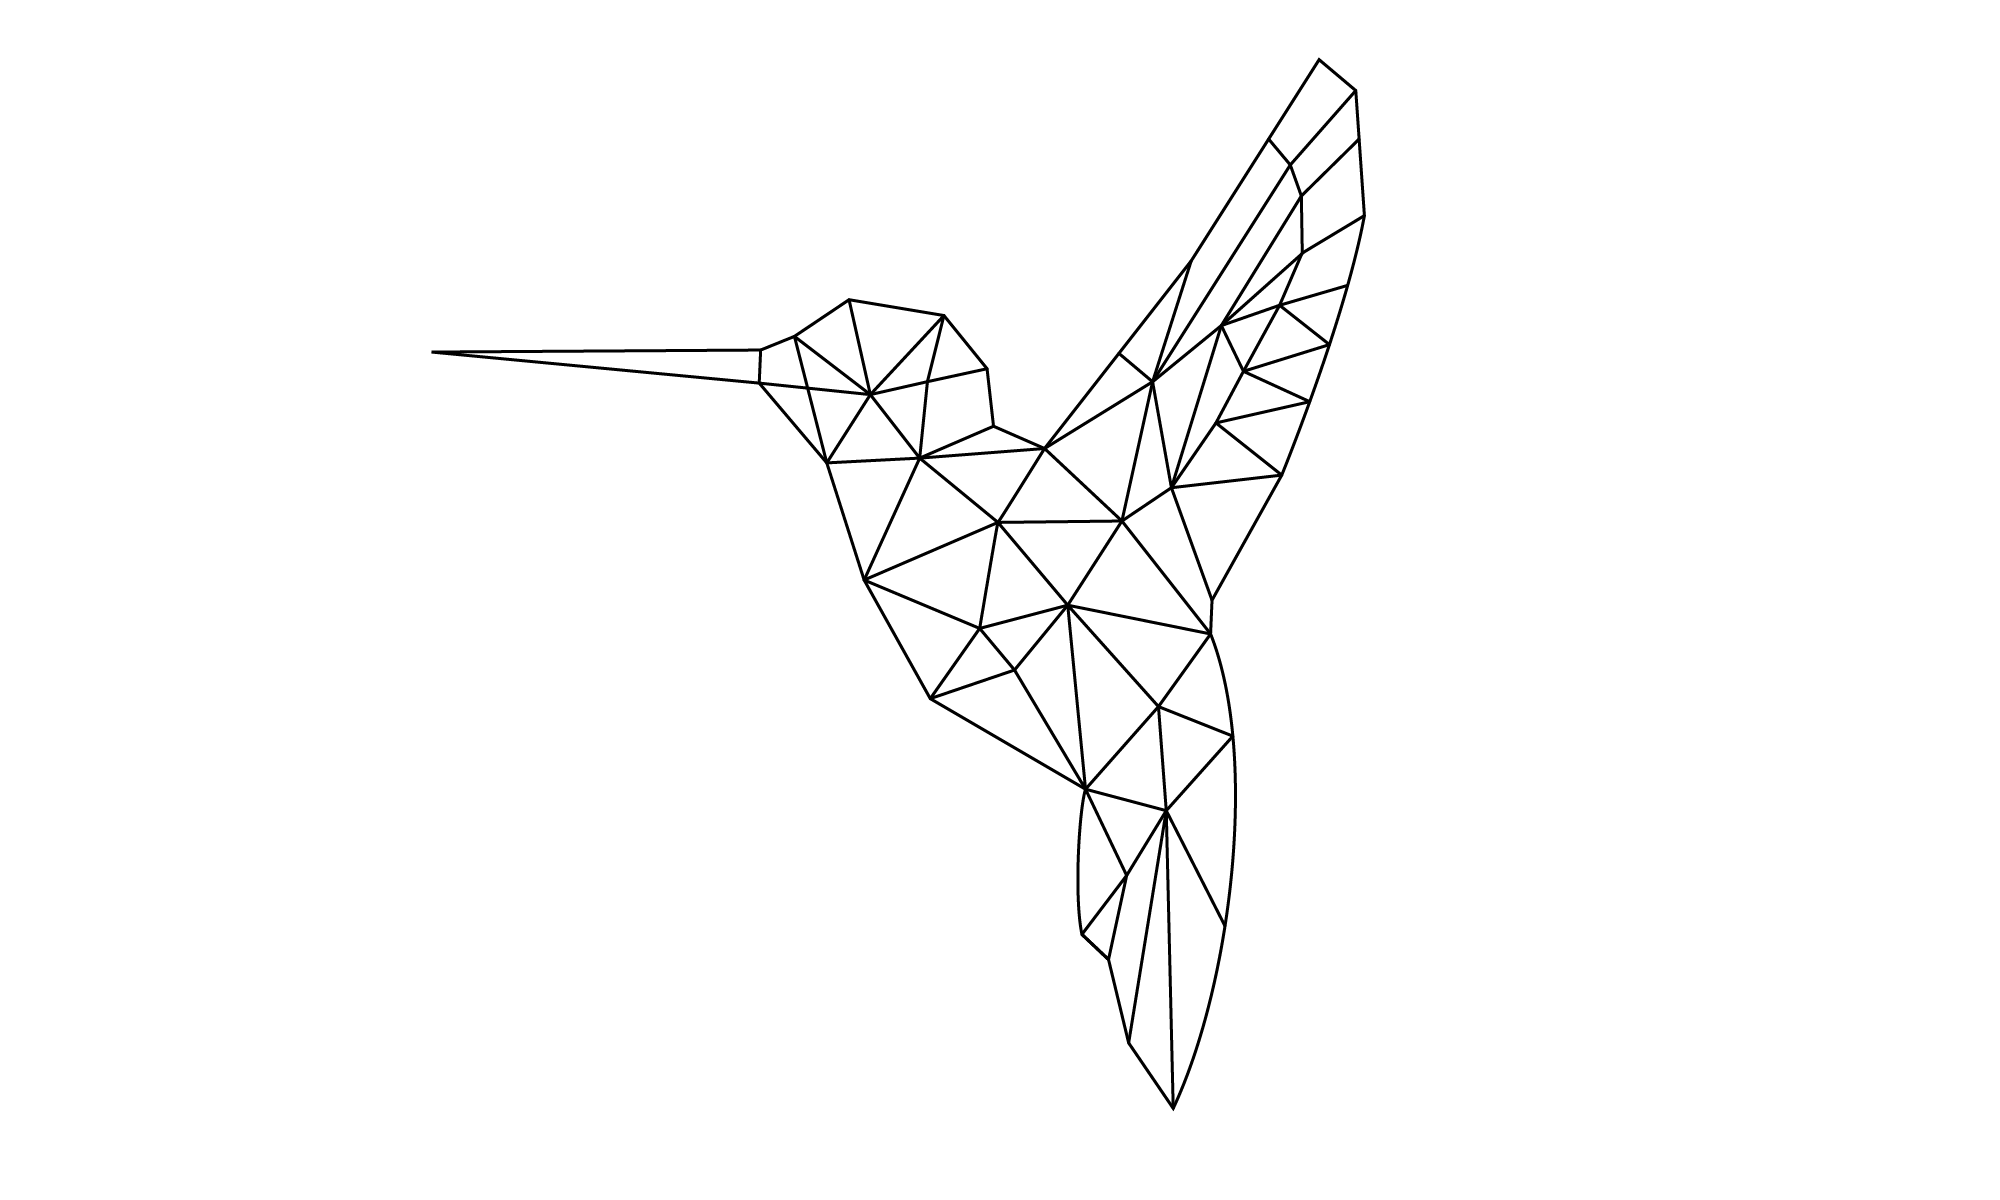 One Word Hummingbird Line Art